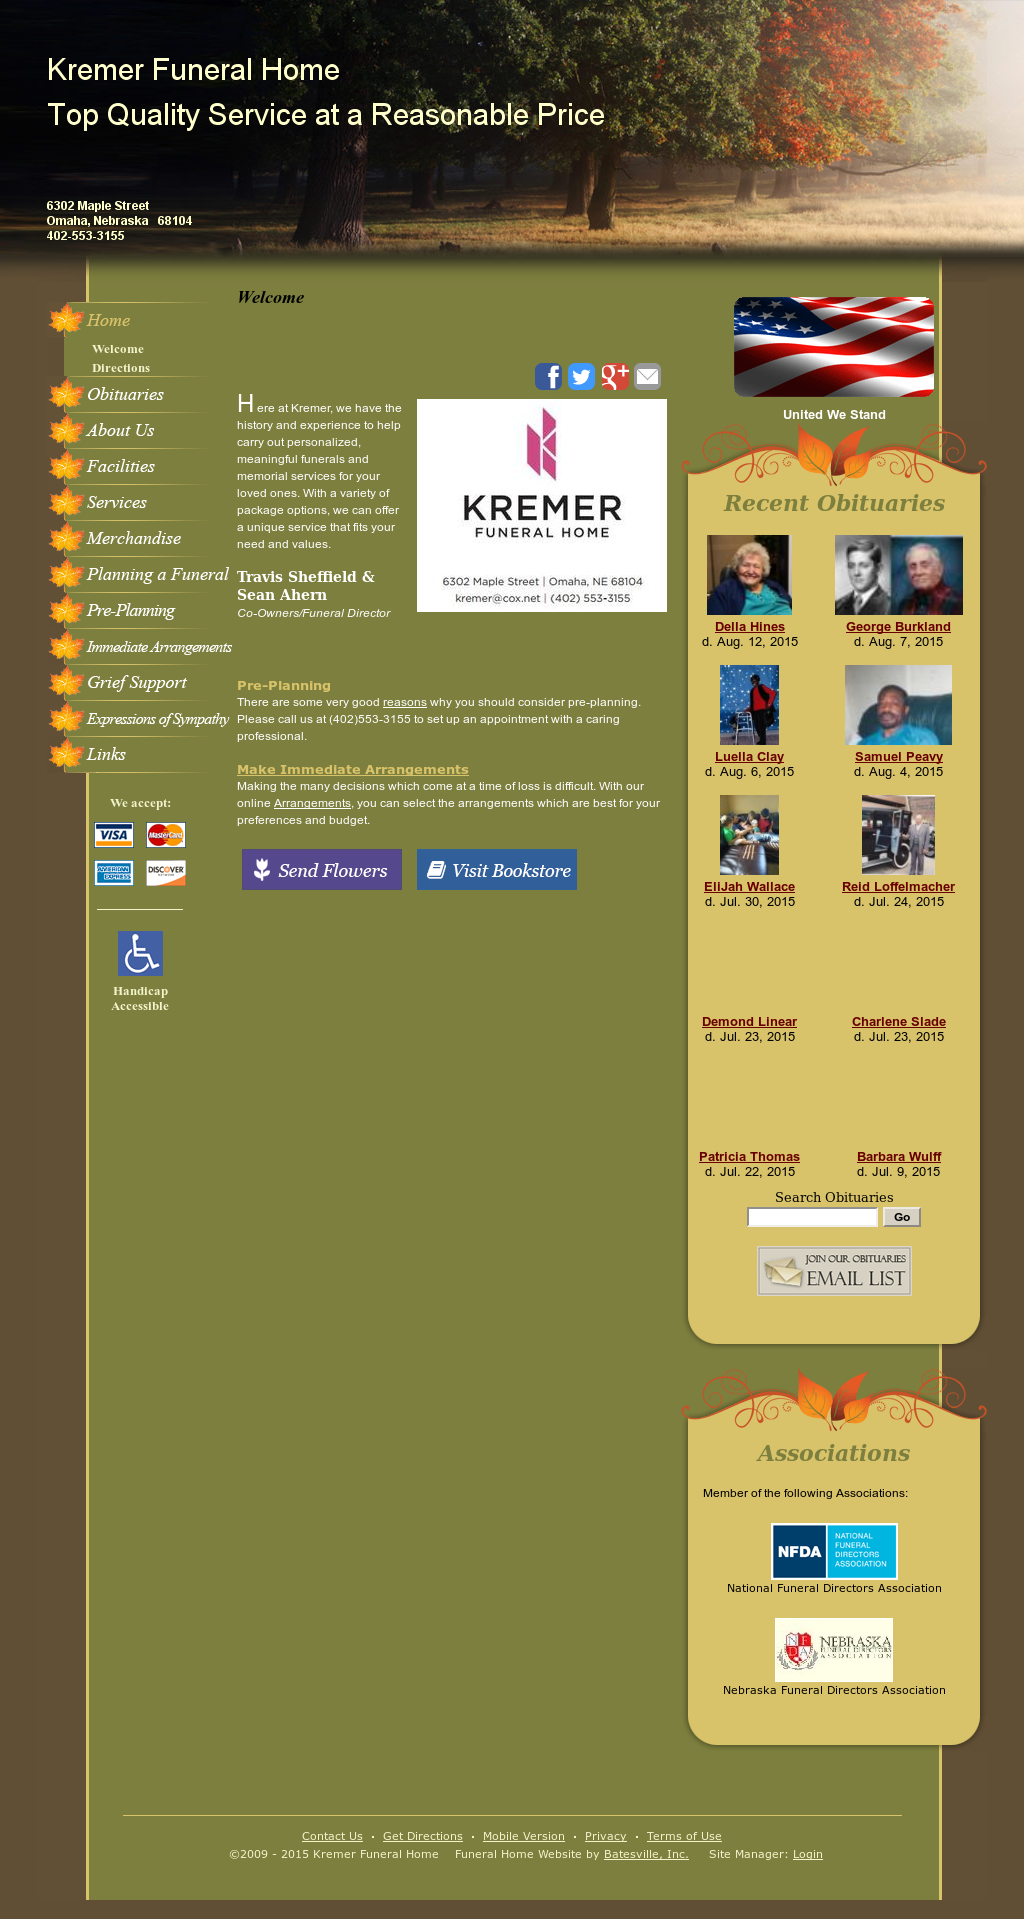 Kremer Funeral Home Funeral Home Competitors, Revenue and